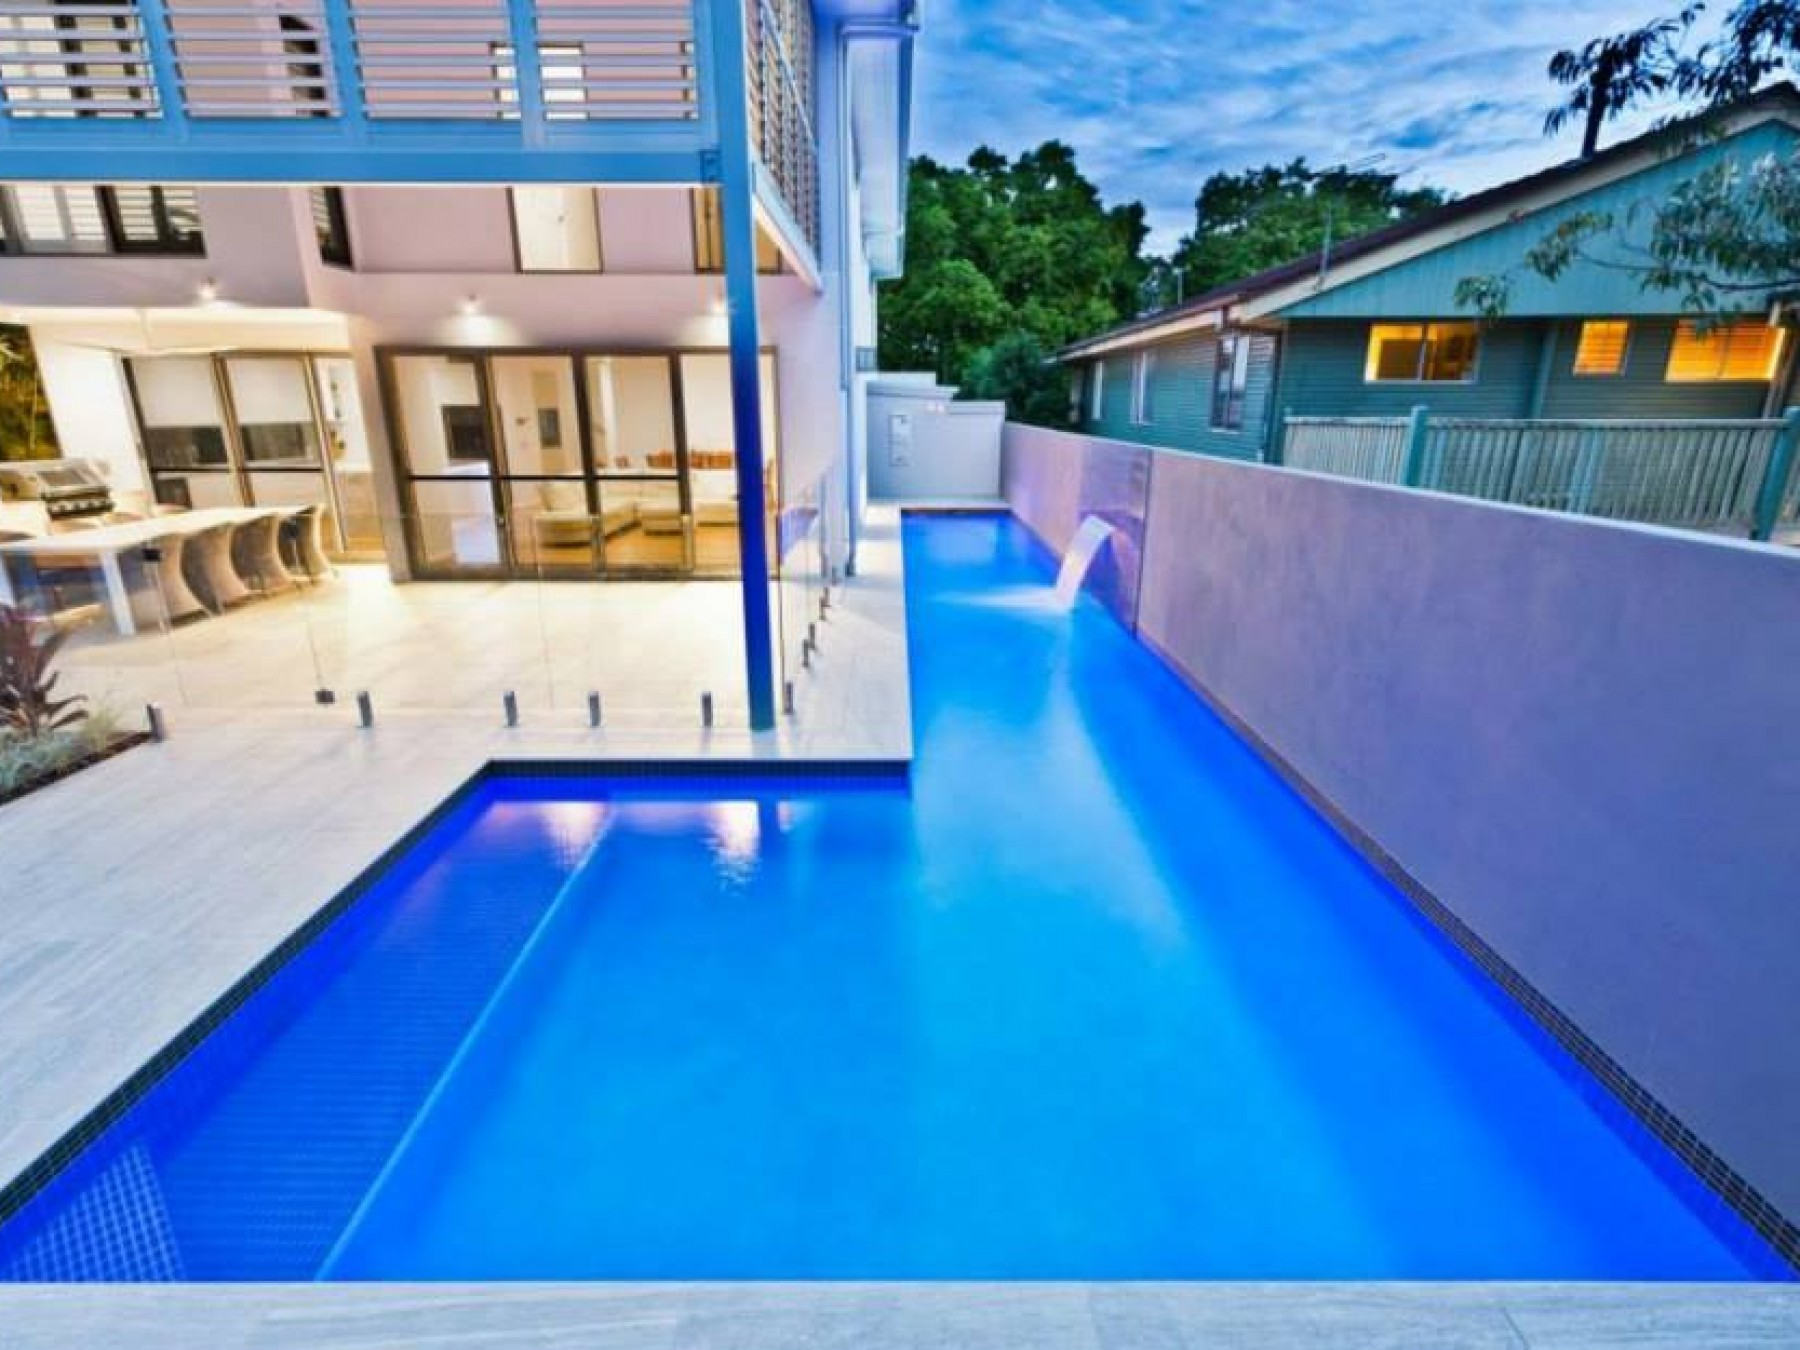 Selling or Leasing a pool in Bardon